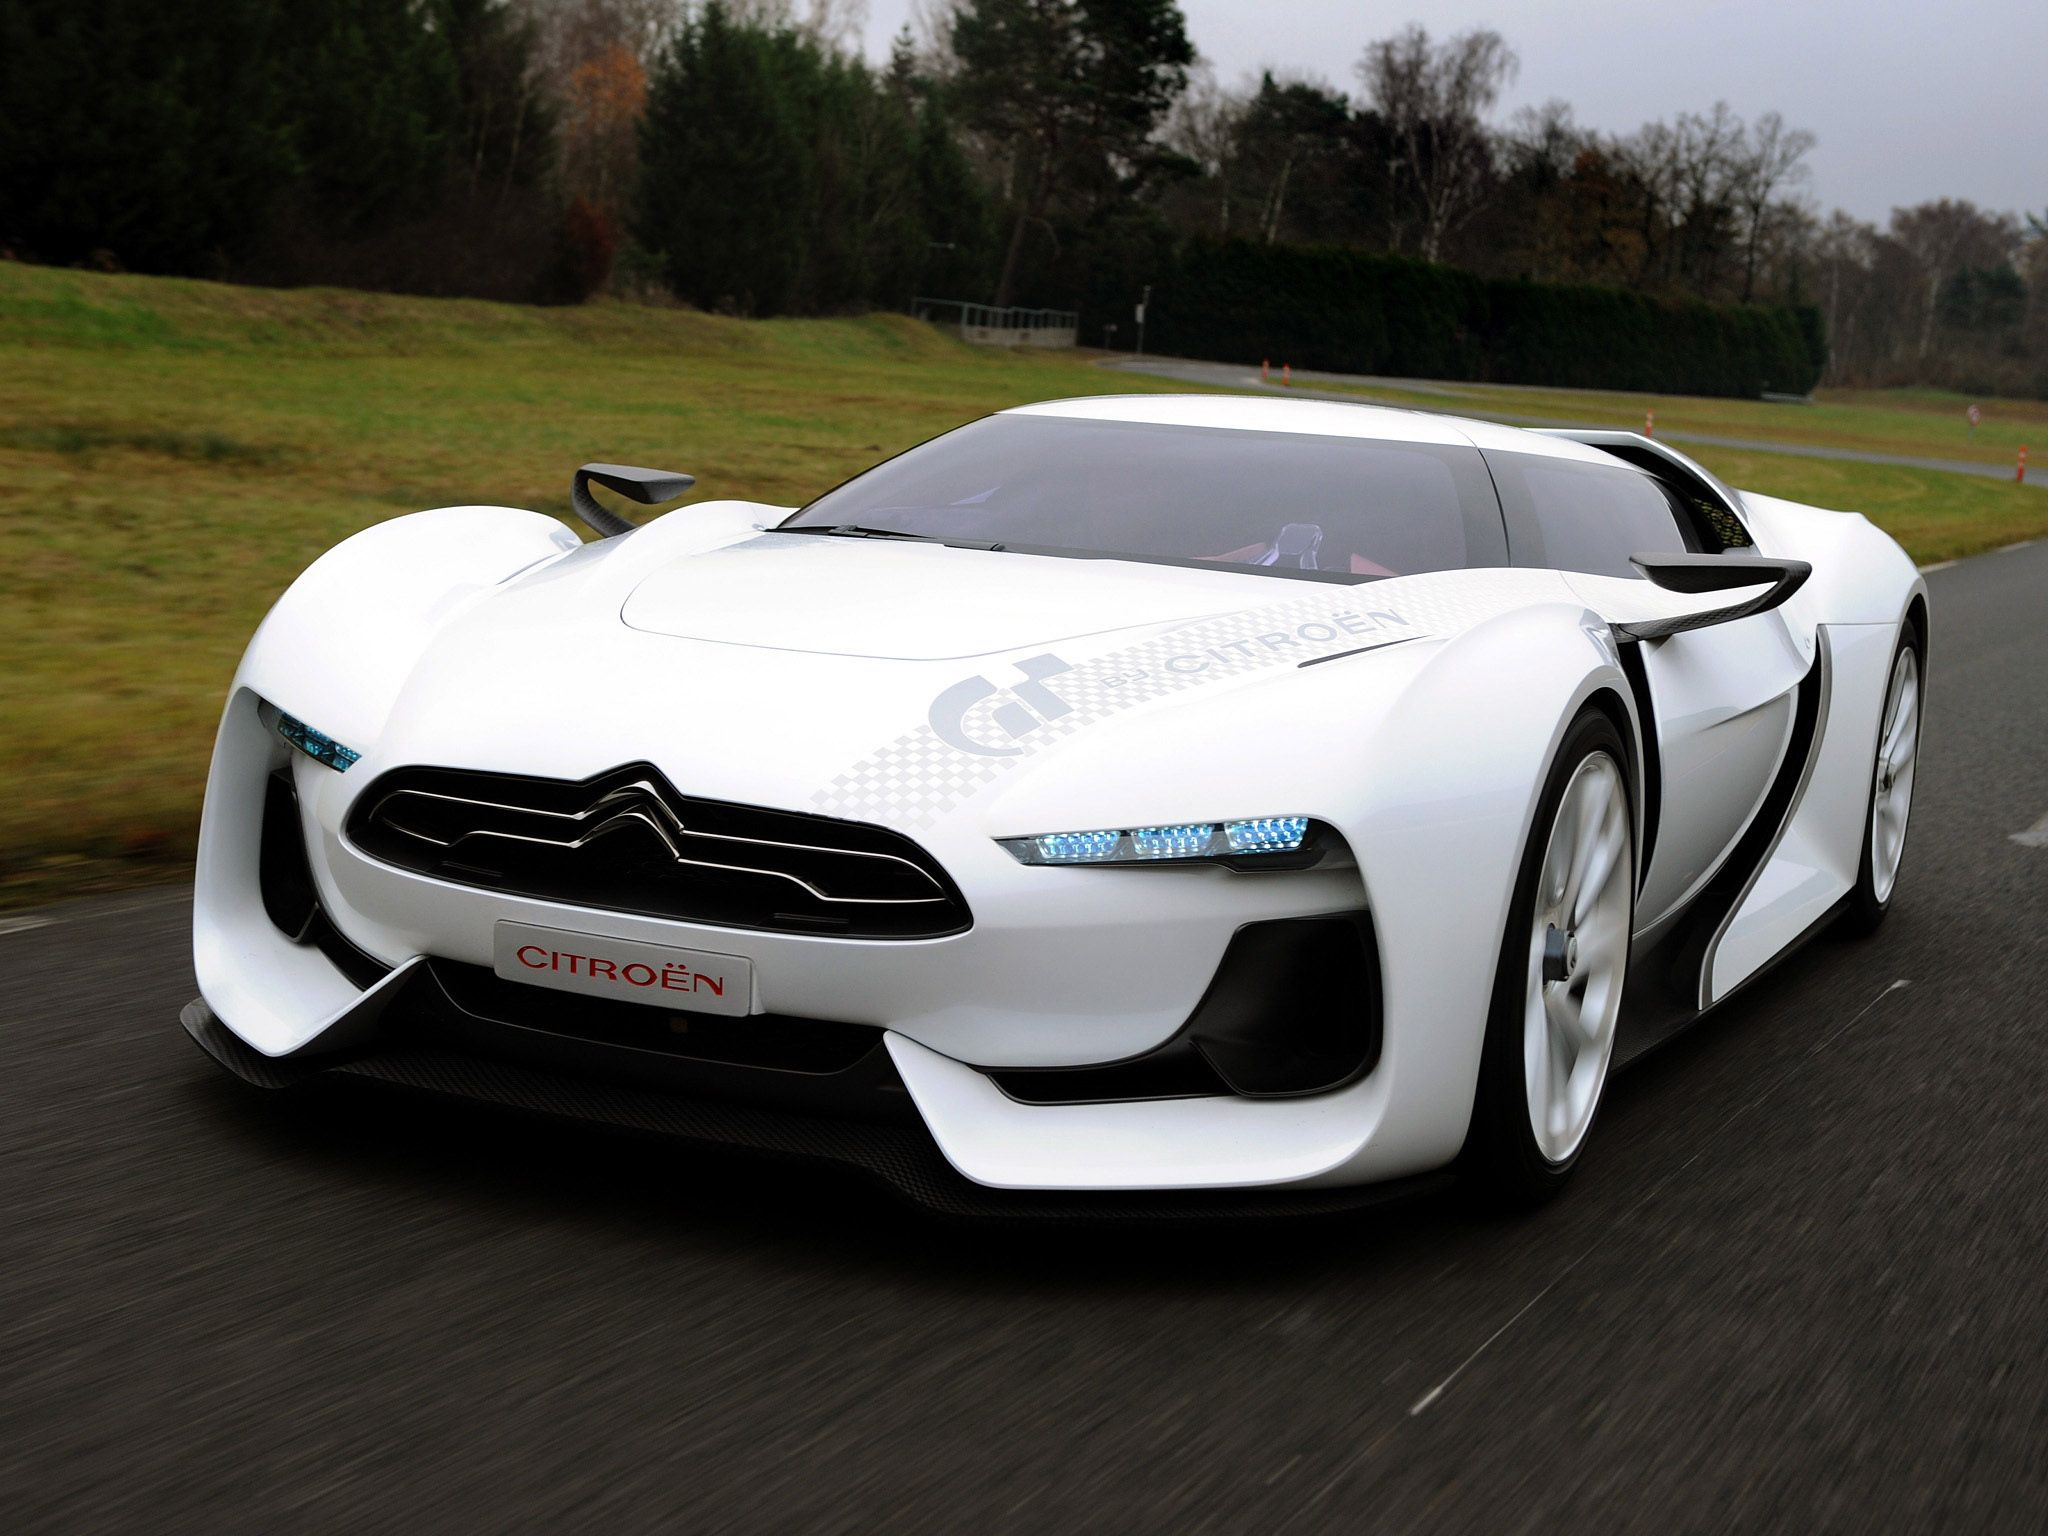 sporty futuristic citroen gt concept new designs and concepts pinterest by storm troopers. Black Bedroom Furniture Sets. Home Design Ideas